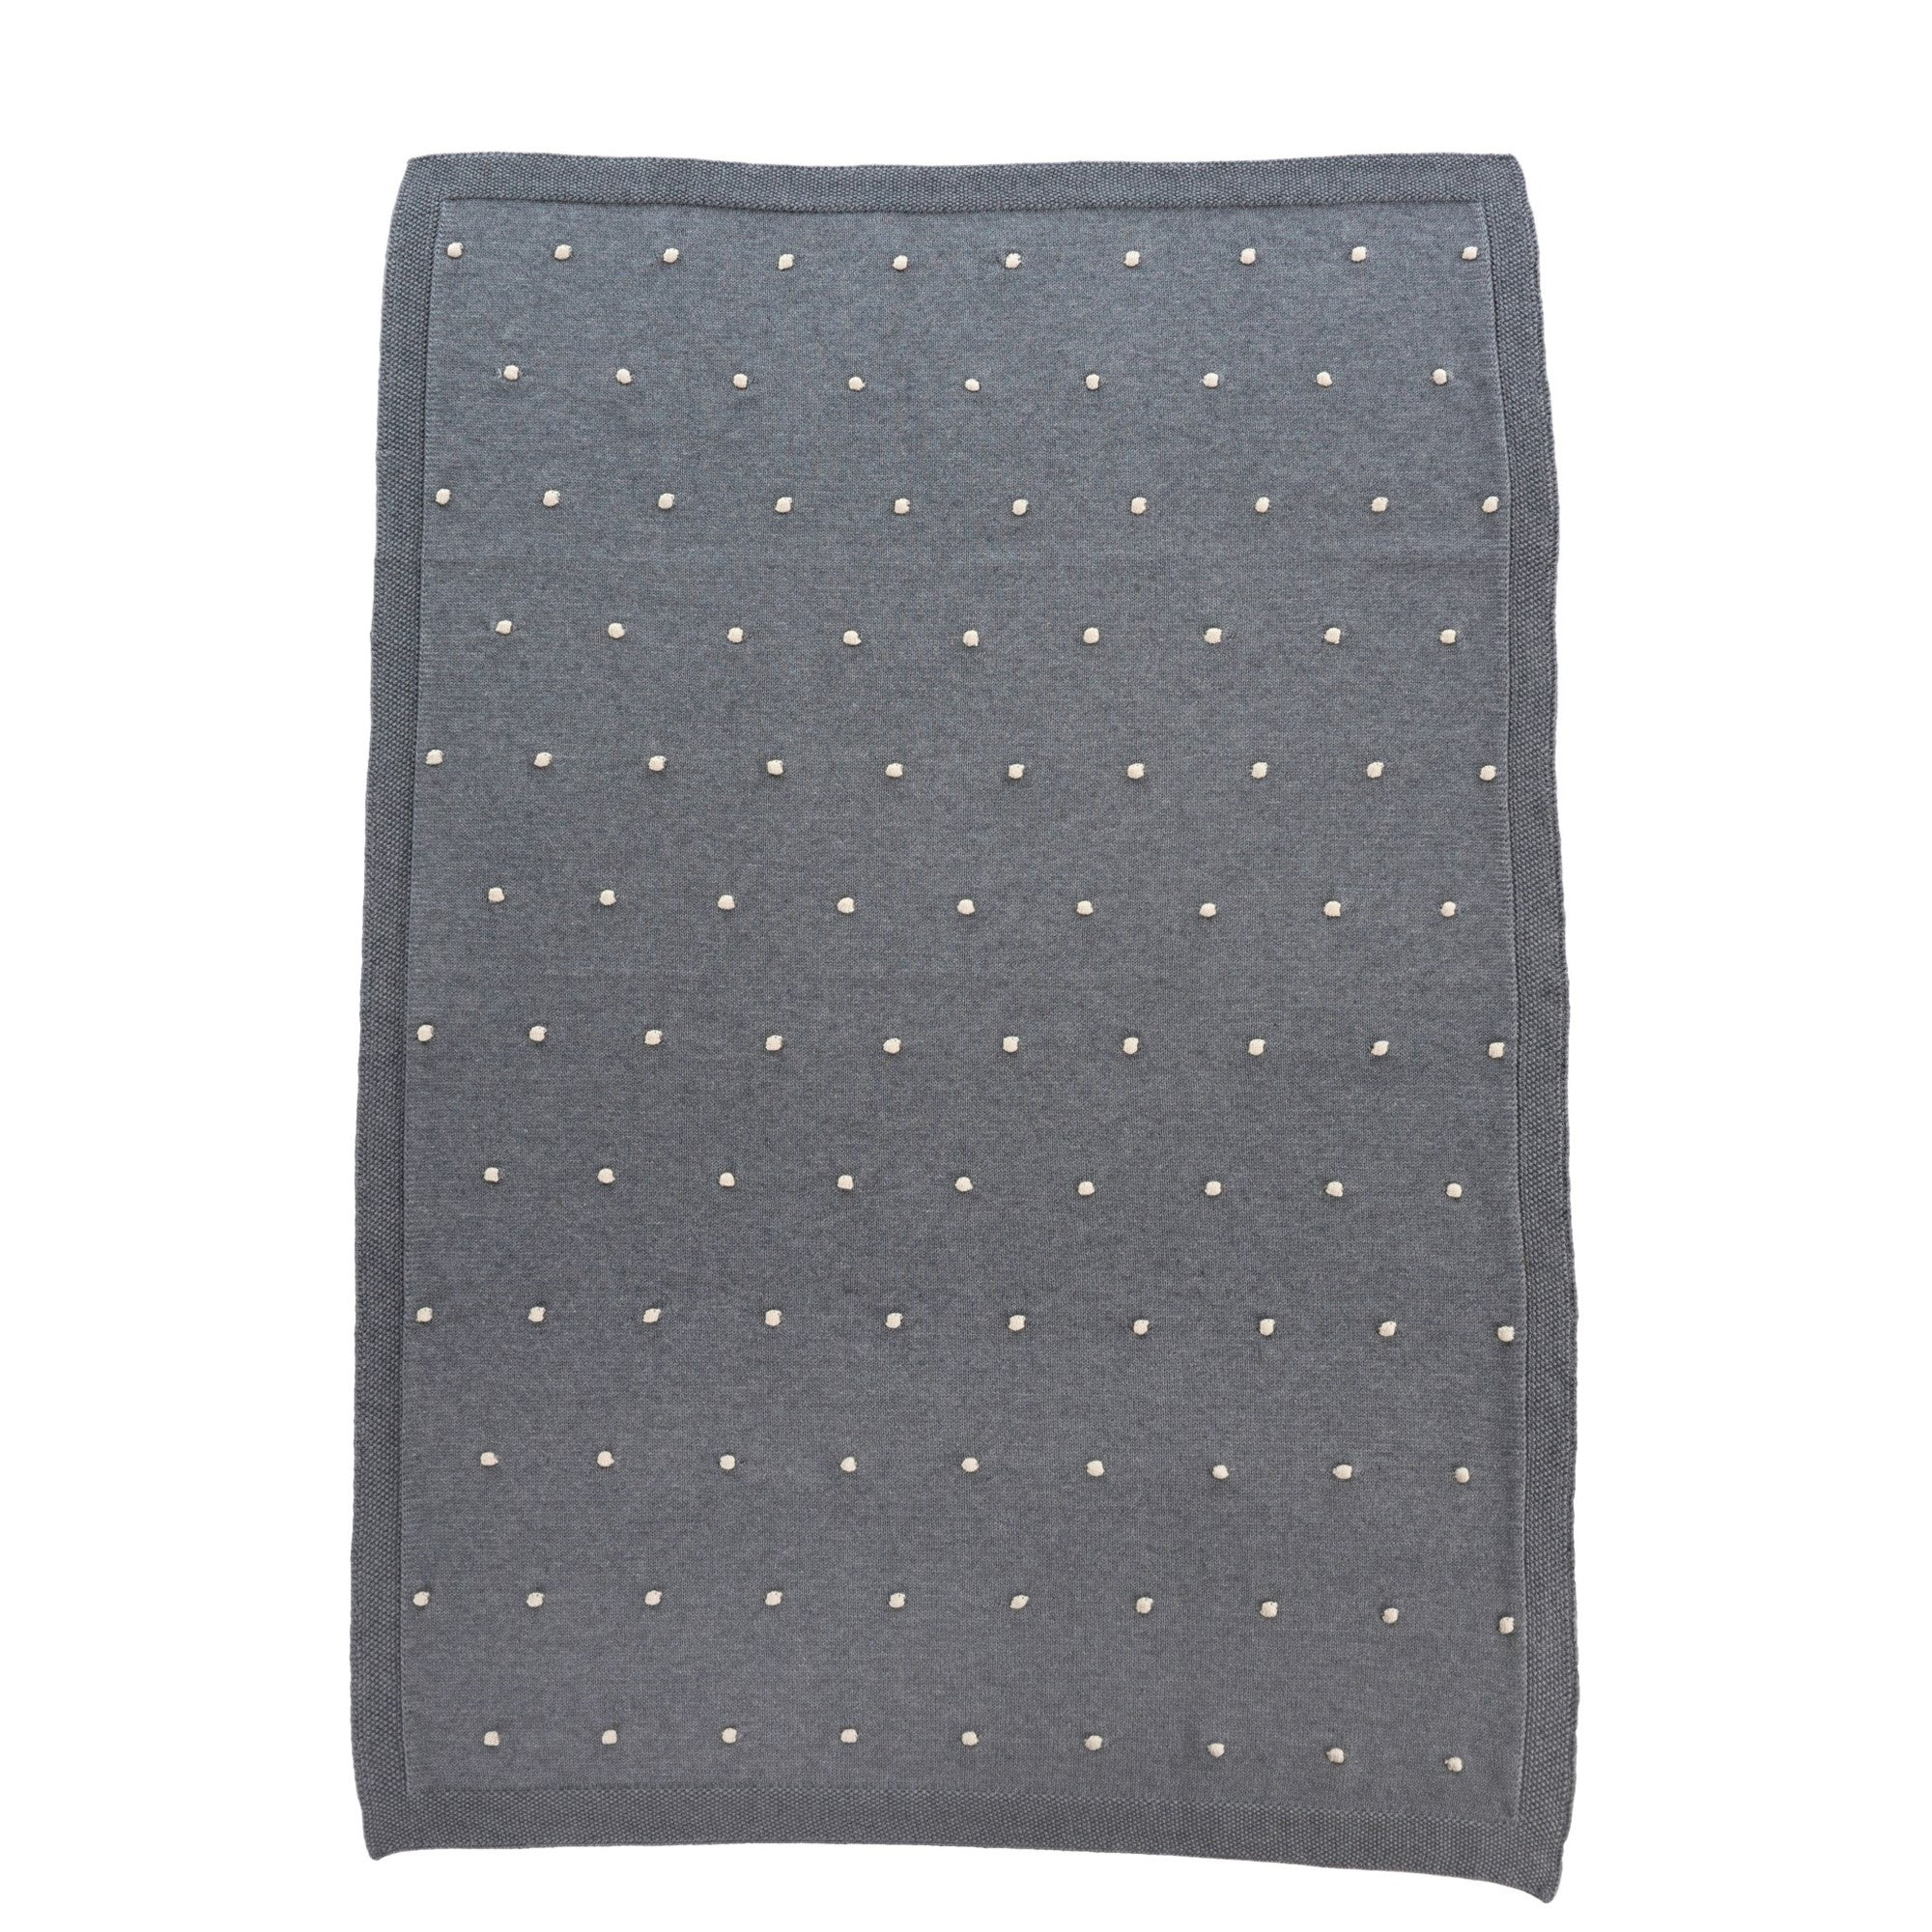 Dotty baby blanket in grey